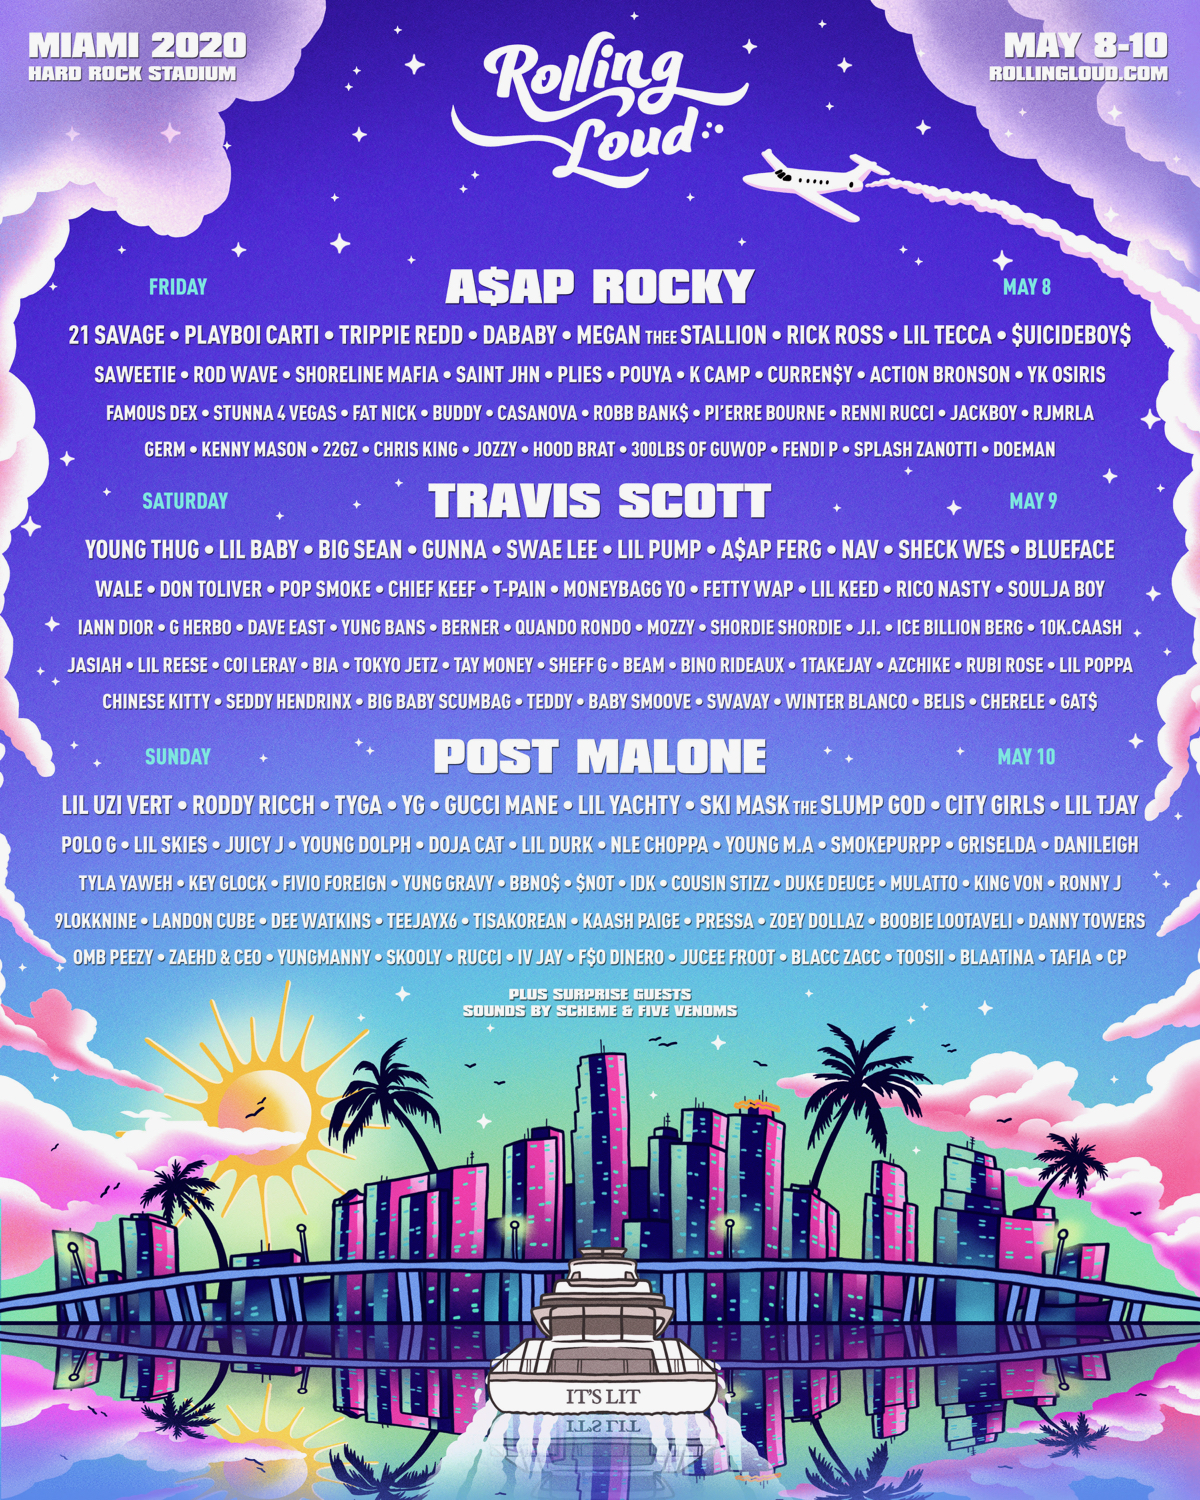 Rolling Loud 2020 Miami lineup